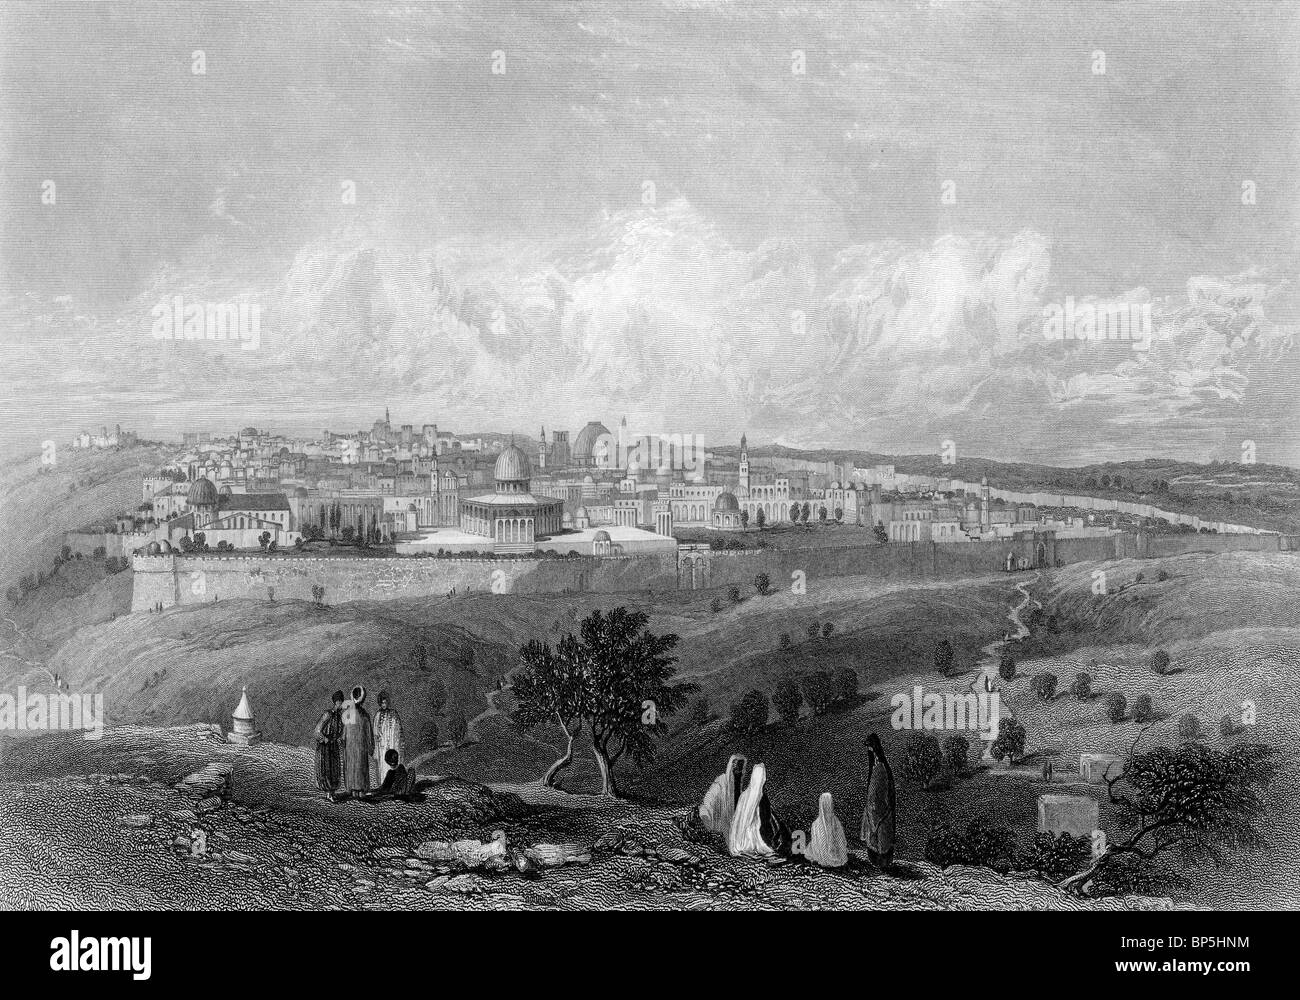 City of Jerusalem viewed from top of Mount of Olives in biblical times, - Stock Image